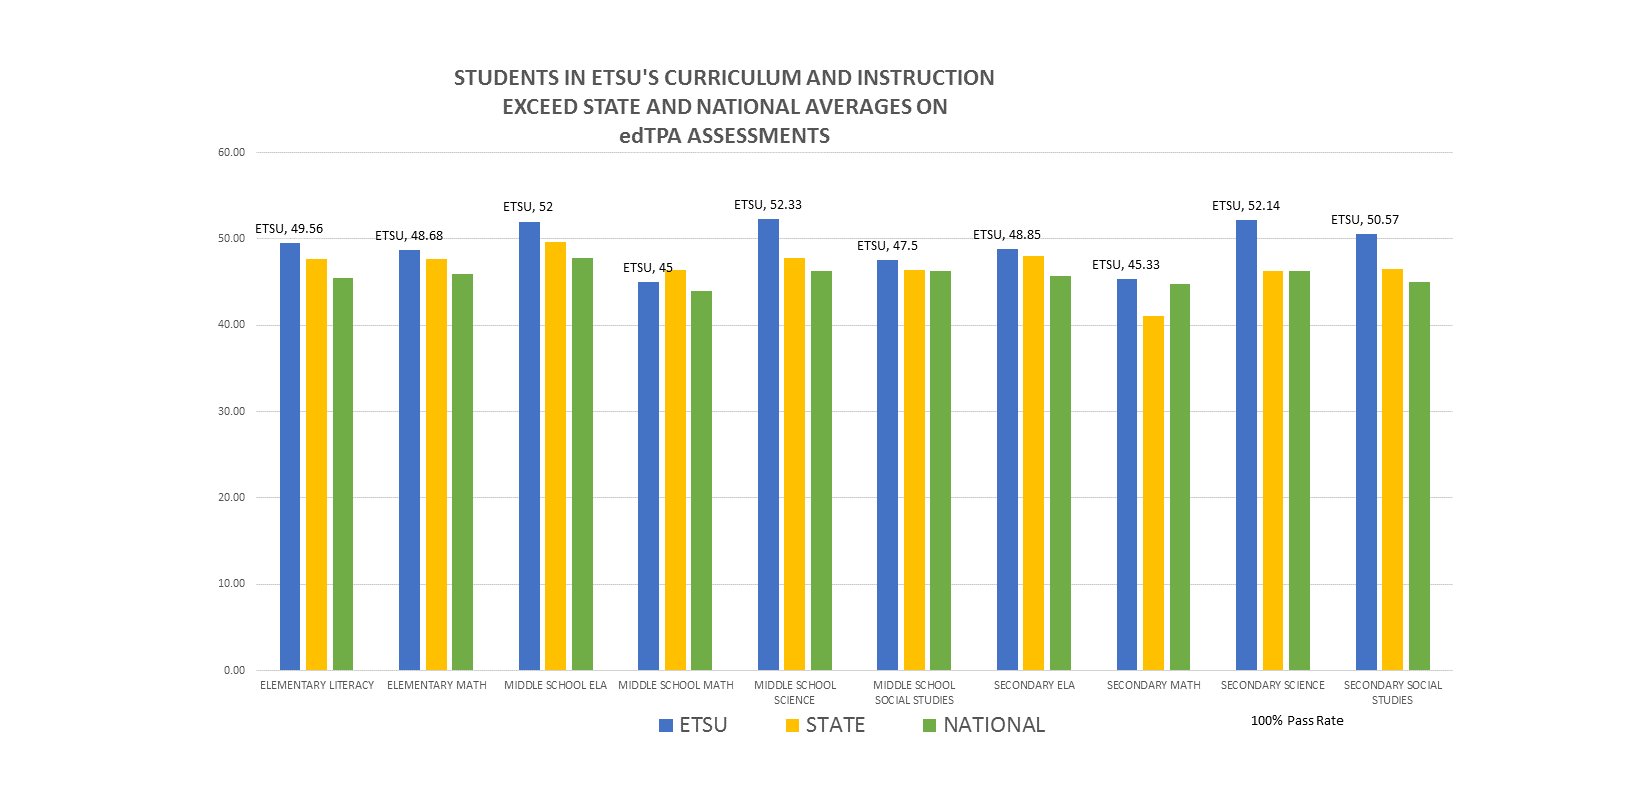 Students in the Department of Curriculum and Instruction (K-5 Elementary Literacy and Elementary Math; Middle School and High School English, Math, Science and Social Studies) performed above the state and national average on 9 out of 10 edTPA assessments.